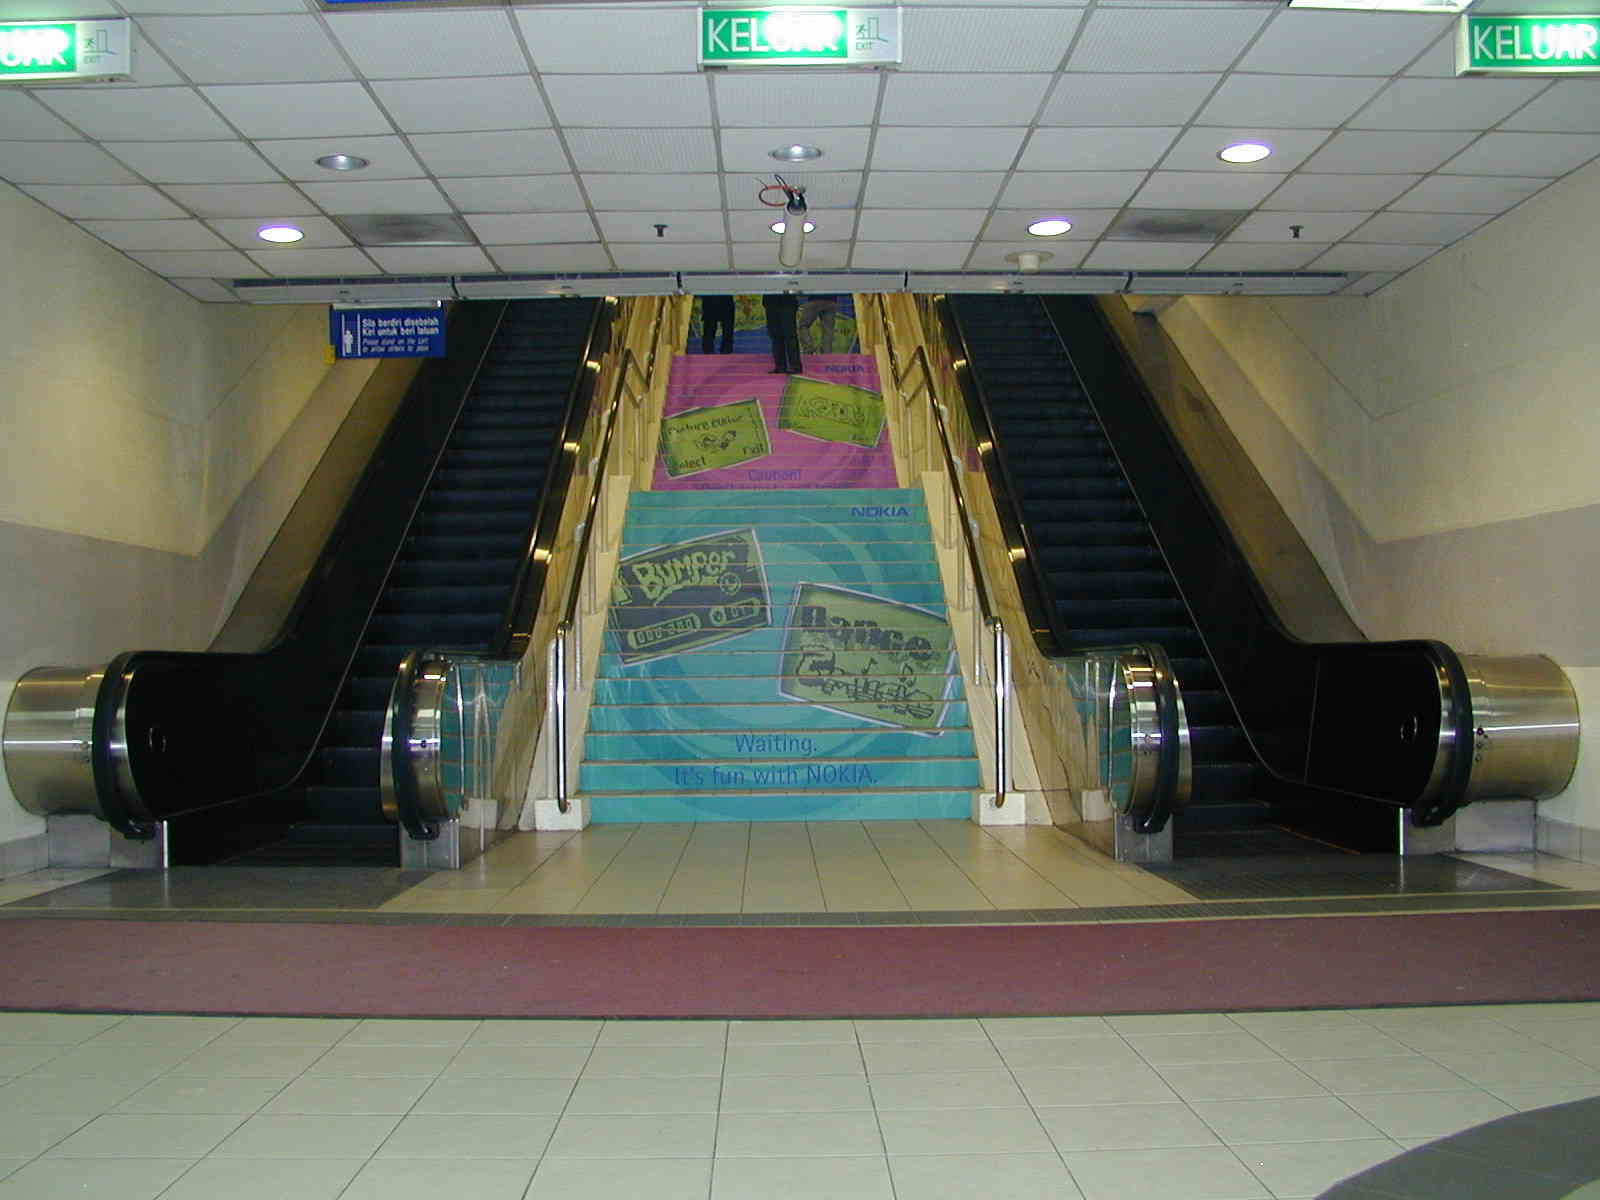 MACscreen 8129 R + 8199 P - NOKIA - train station stairs004.jpg